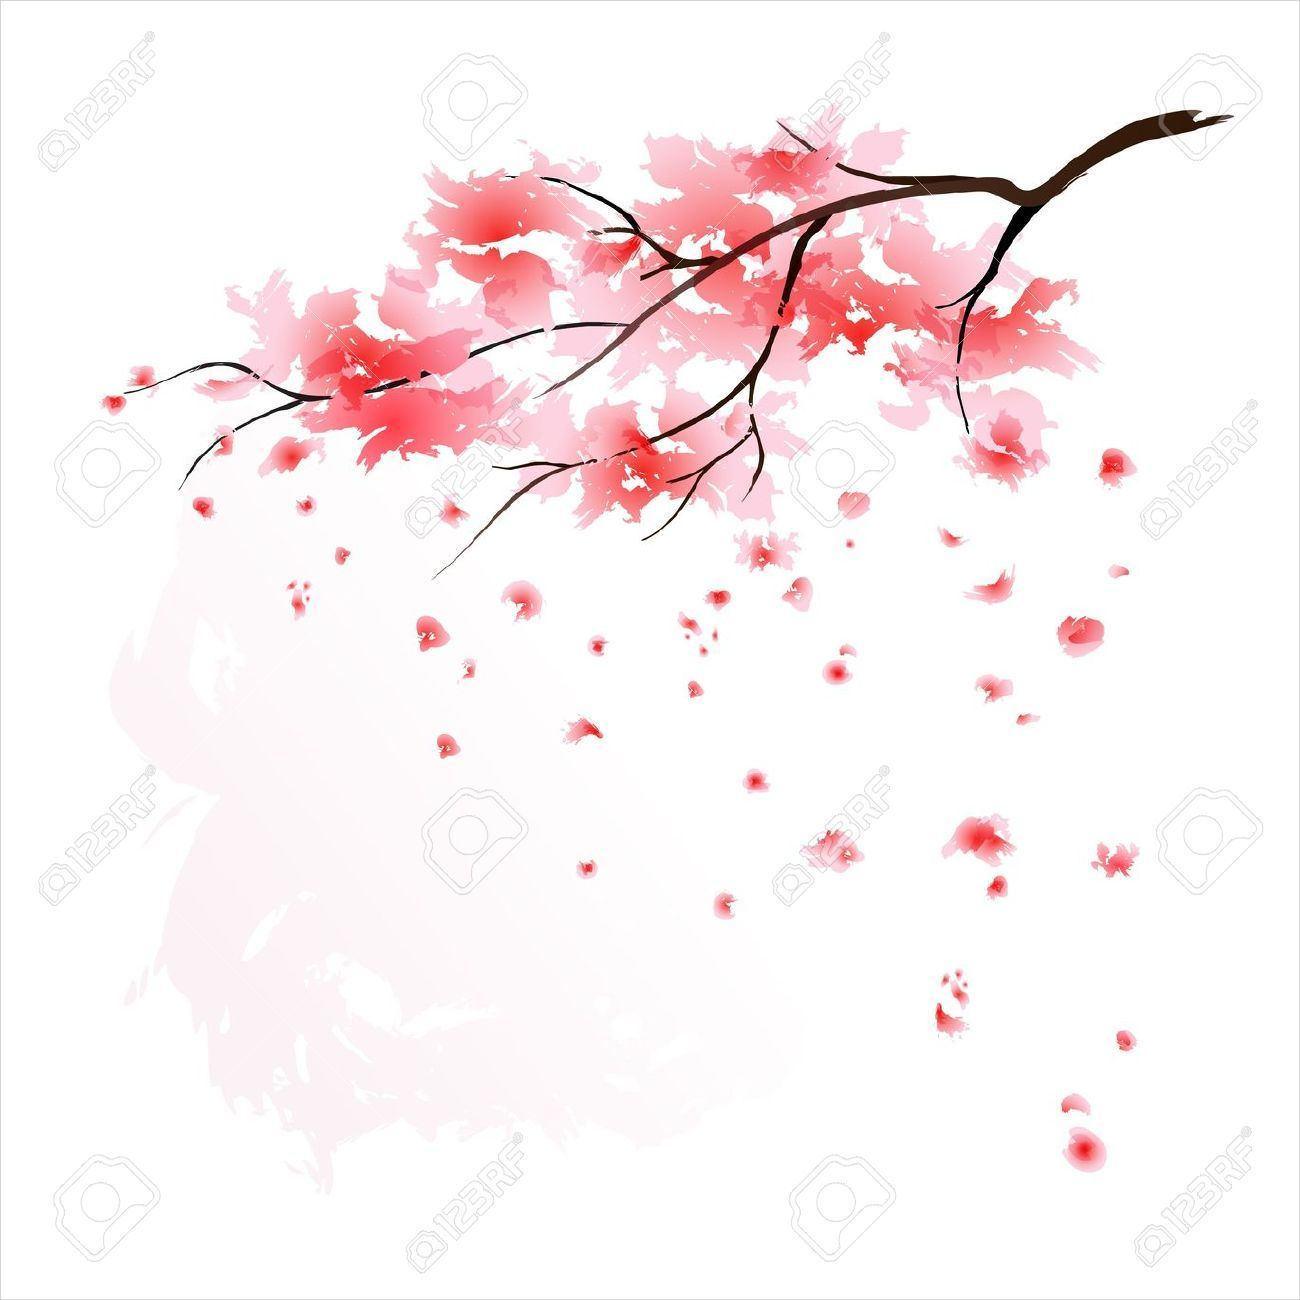 Cherry Blossoms Falling Stylized Wallpaper Sakura Branch Artwork Google Search Tattoo Ideas